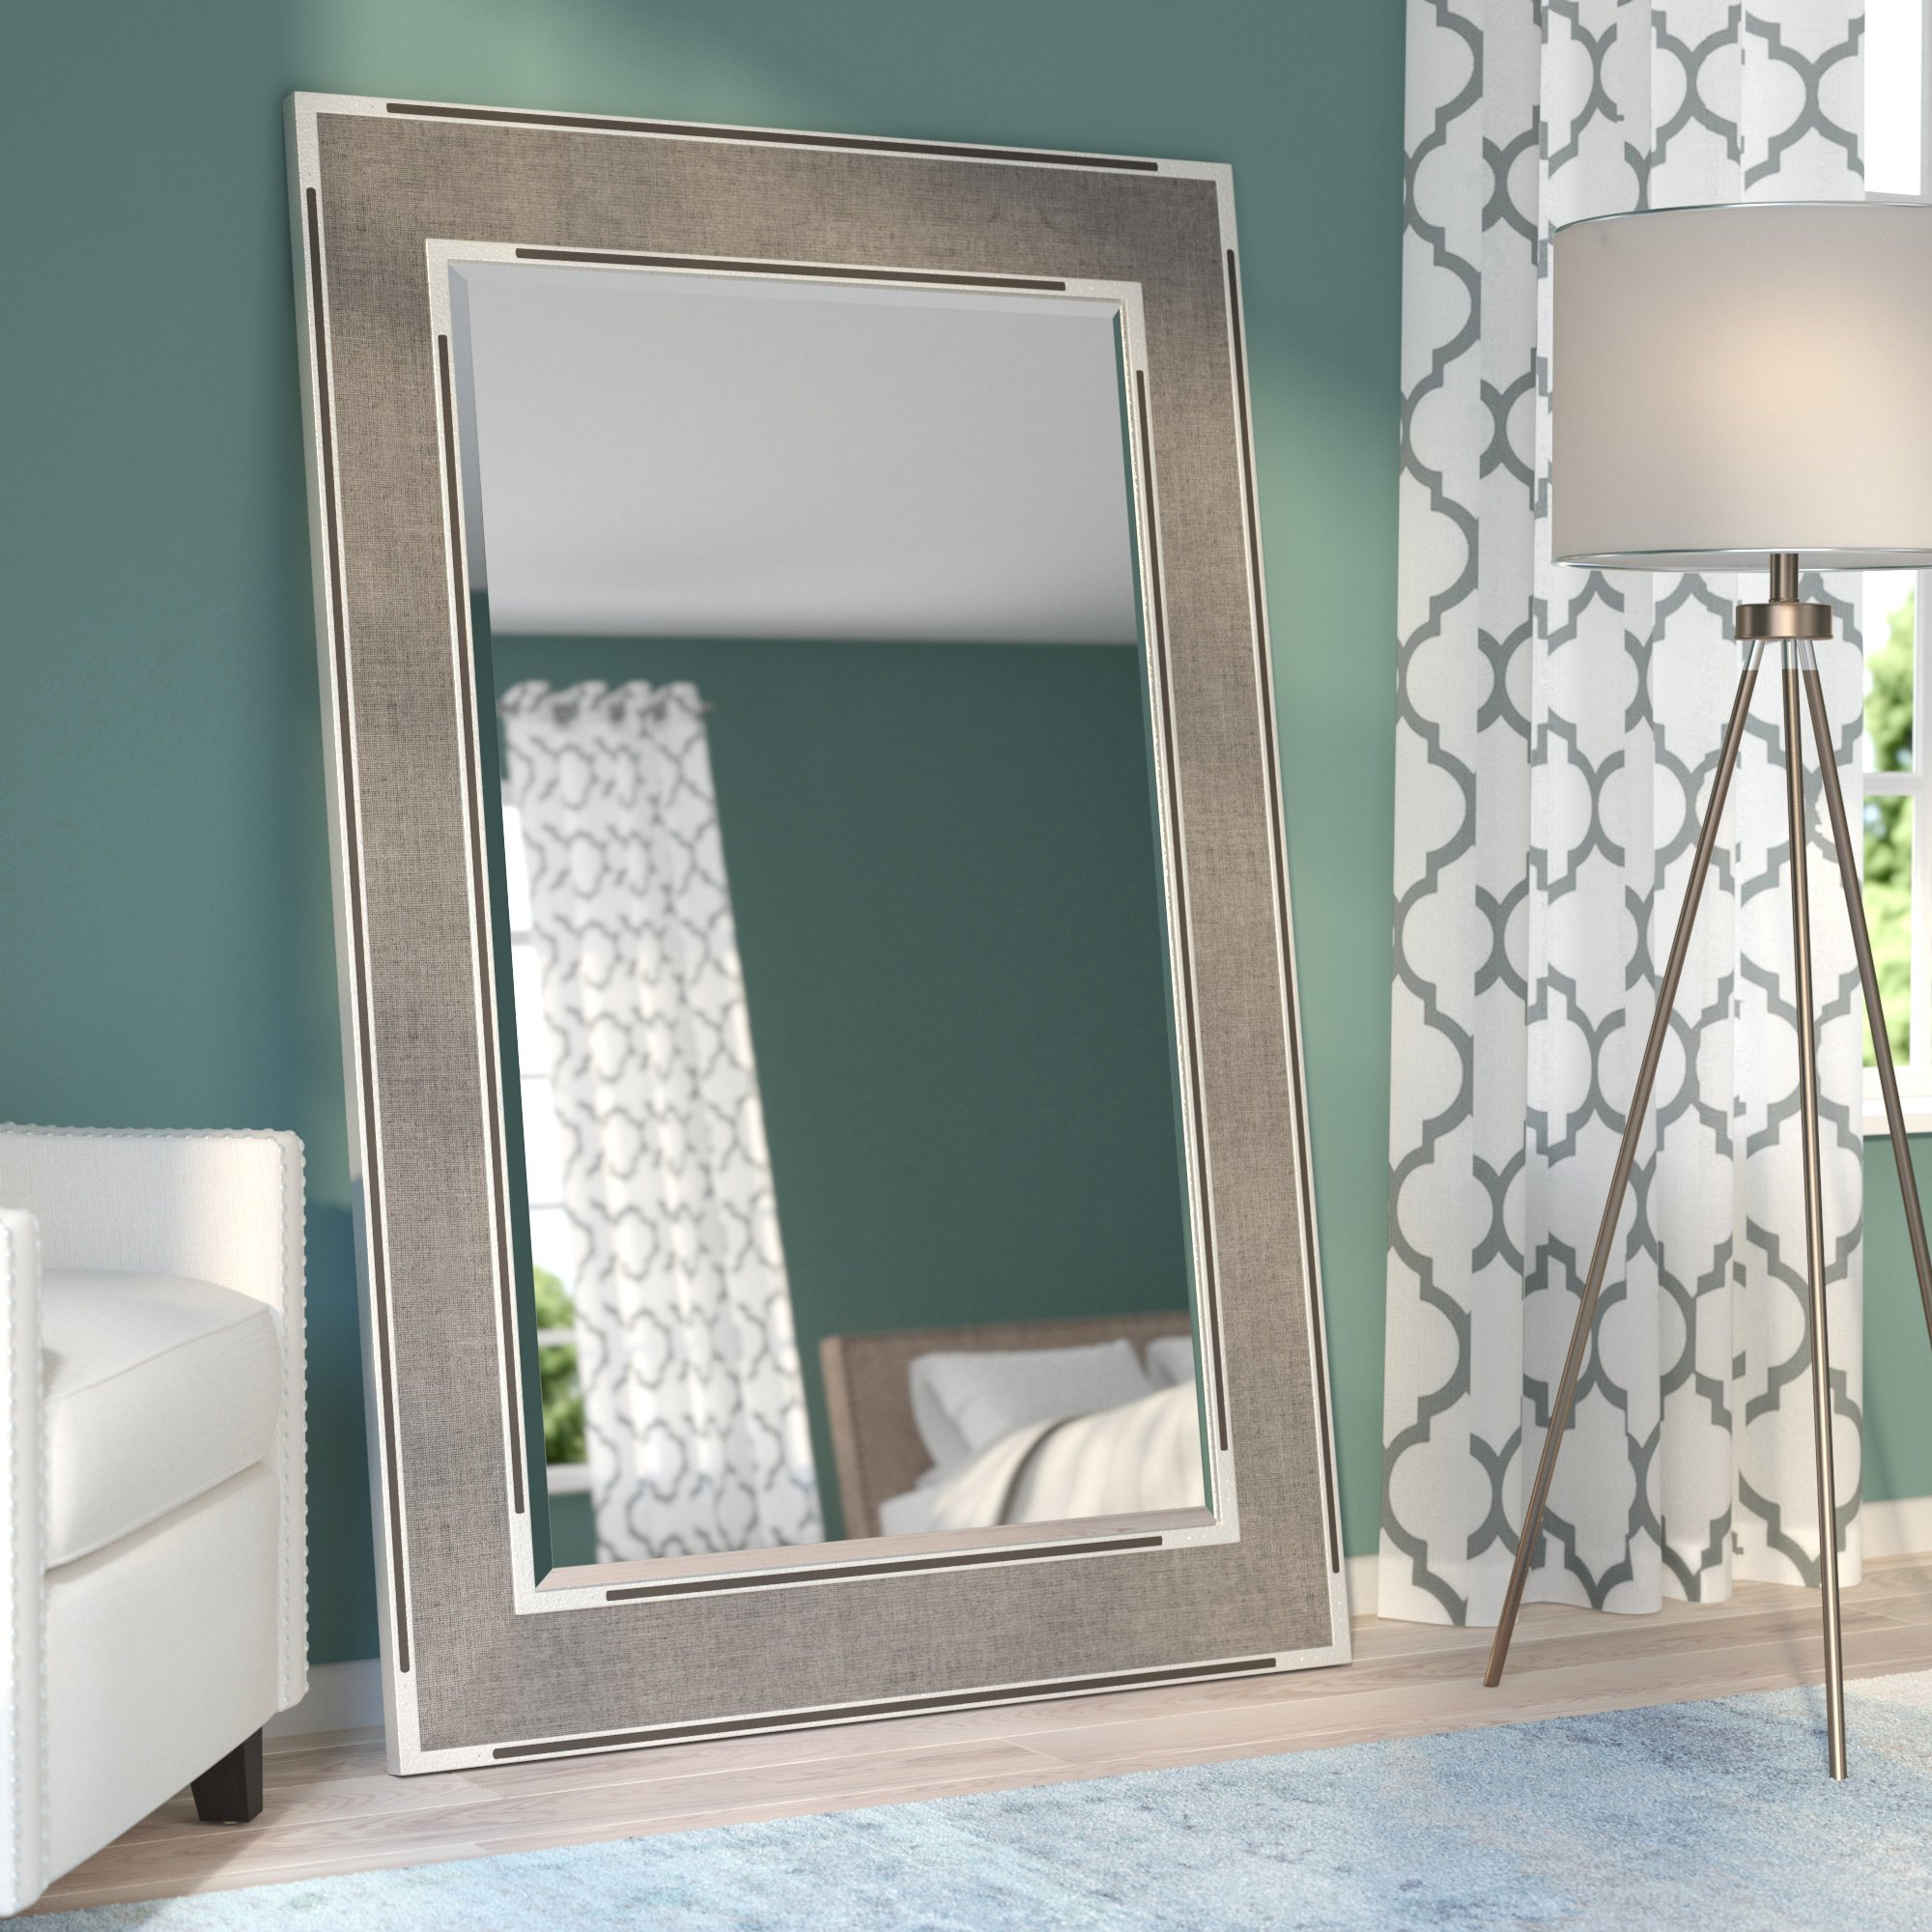 Most Current Brodbeck Oversized Wall Mirror Within Giant Wall Mirrors (View 3 of 20)